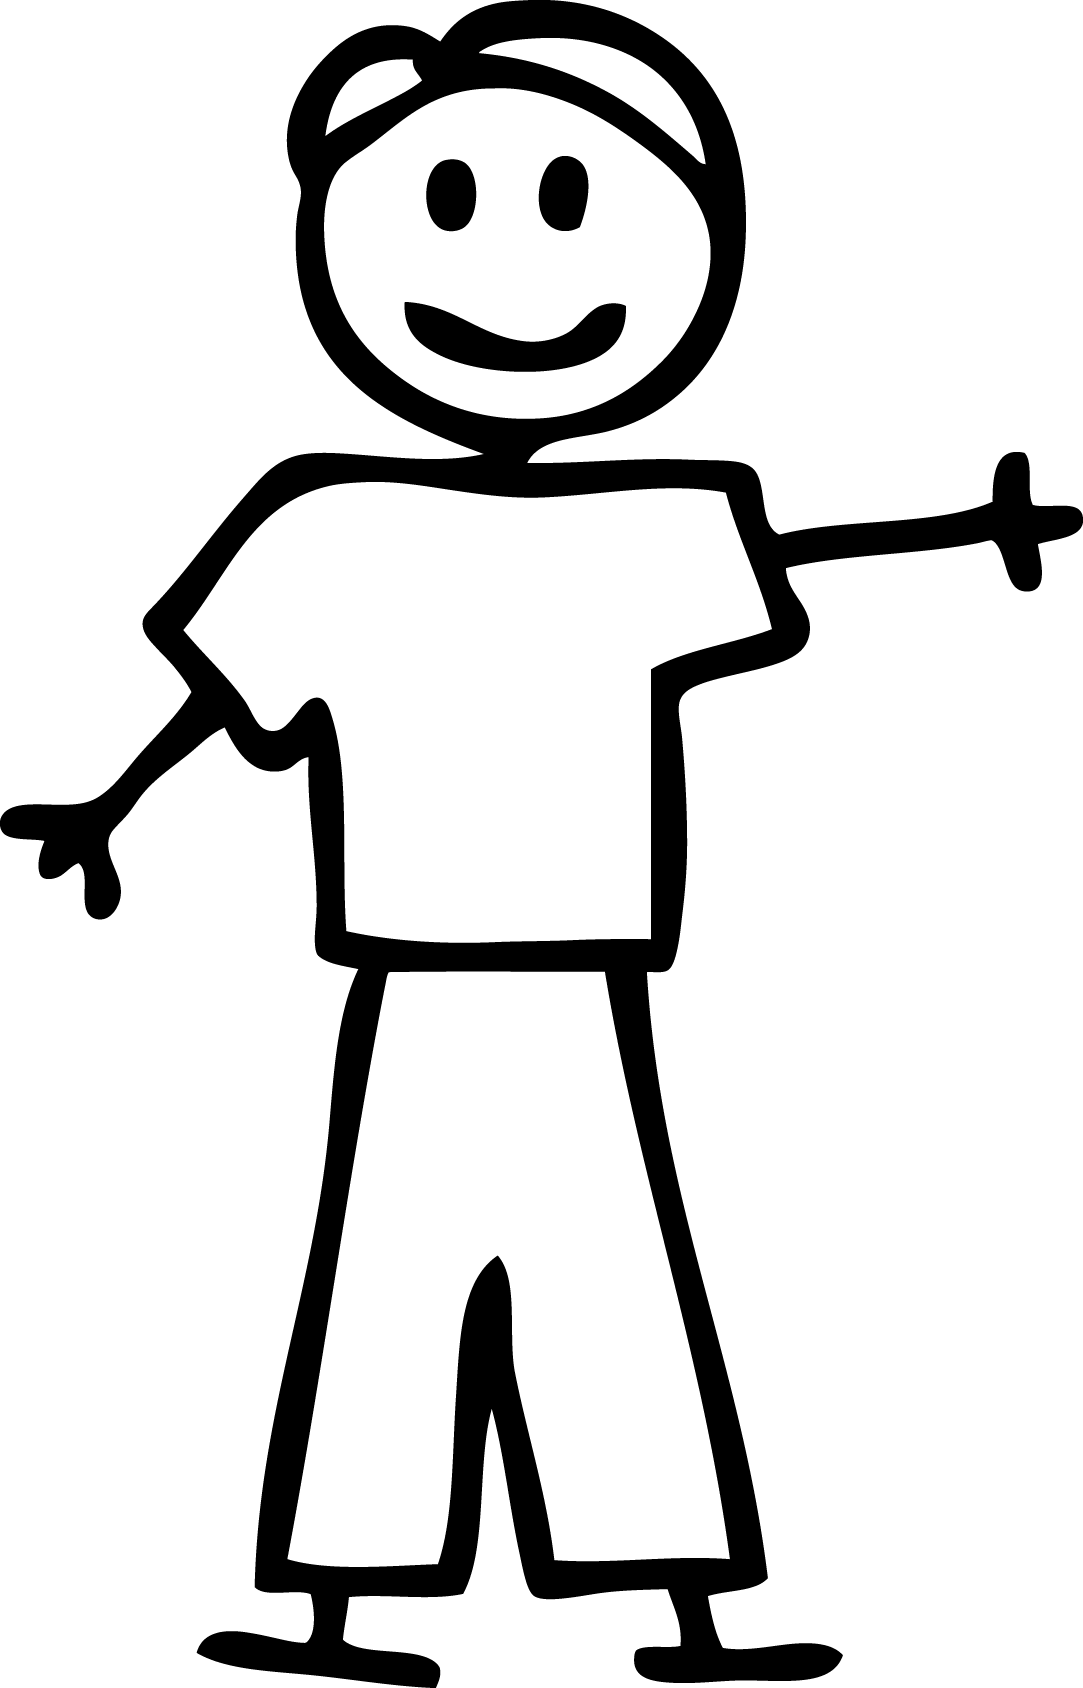 Stick Figure Man